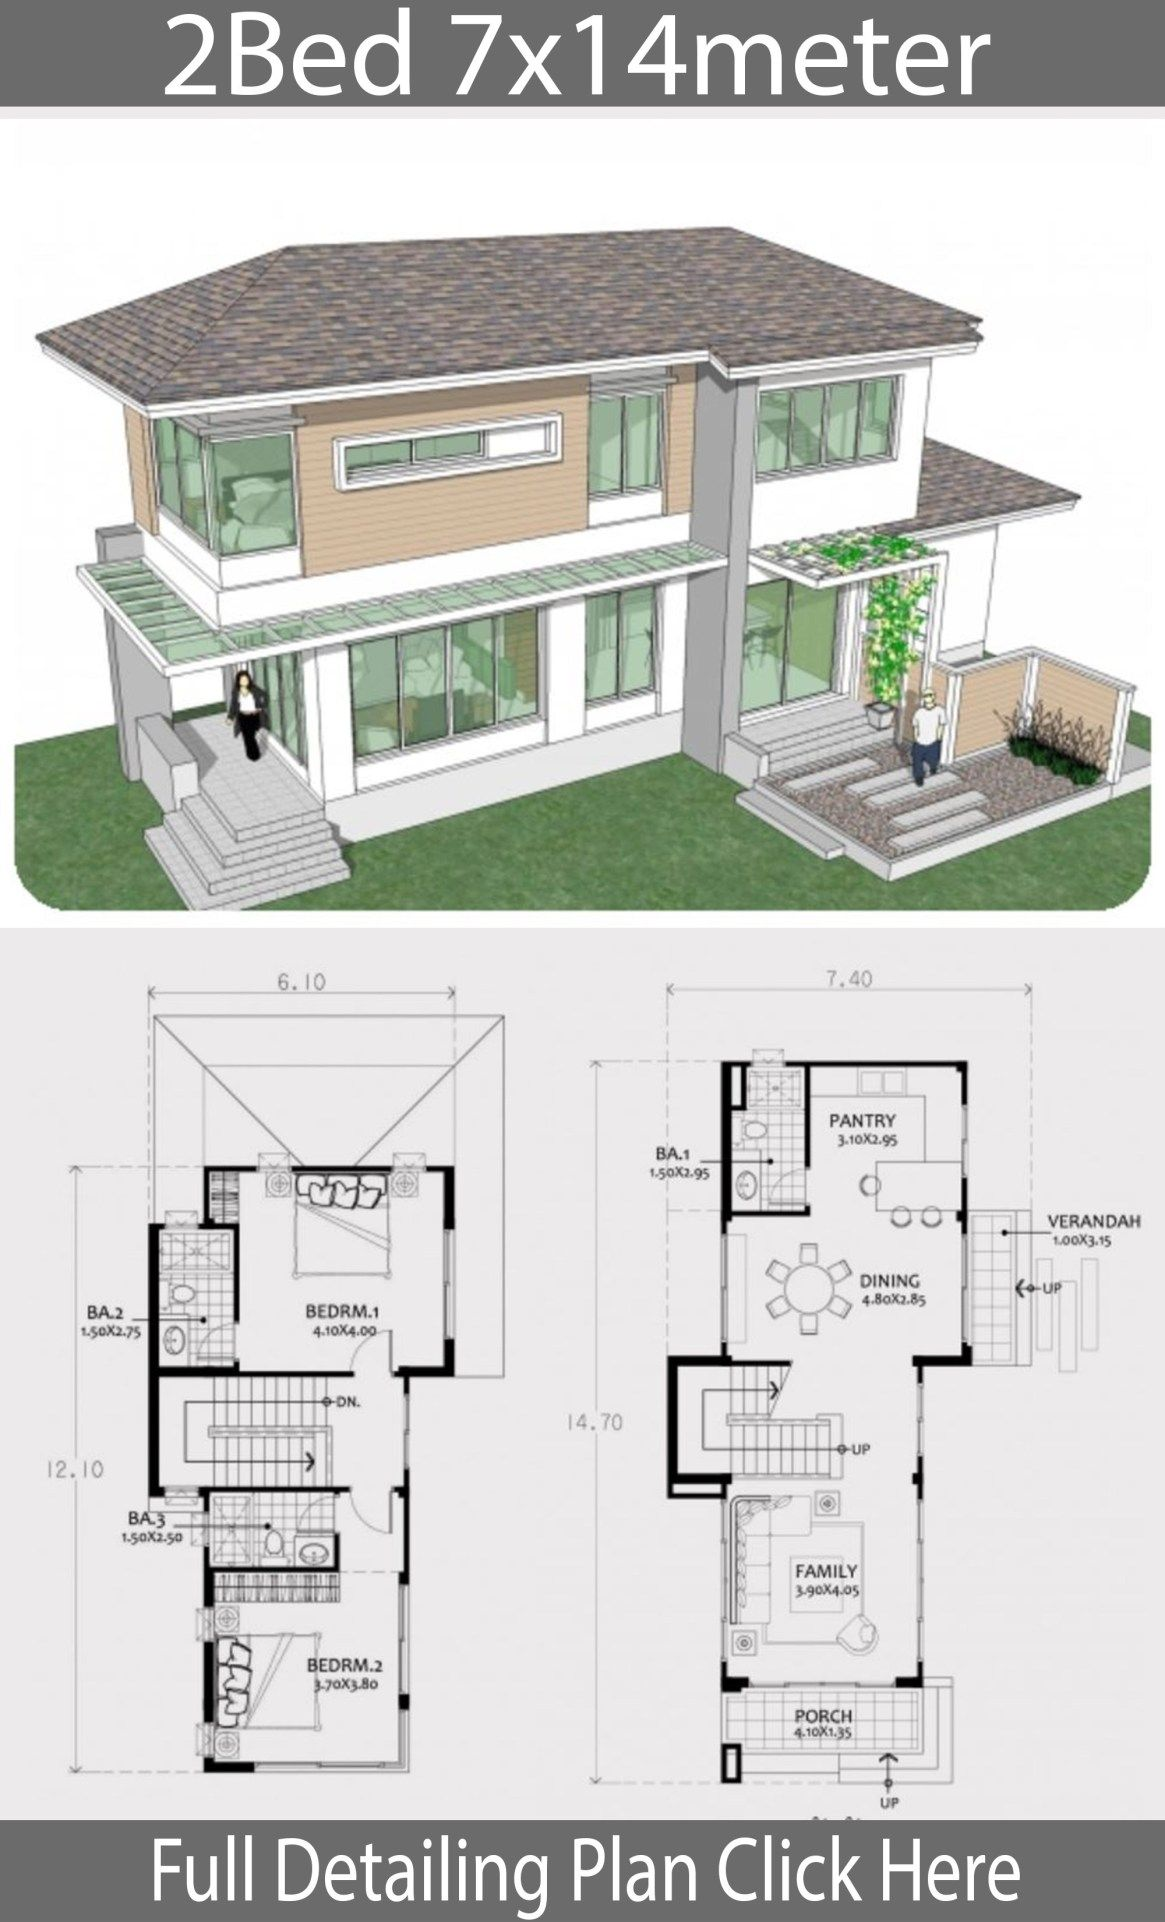 Small Two Story House Plan 7x14m Home Design With Plansearch Sims House Plans House Plans Two Story House Plans